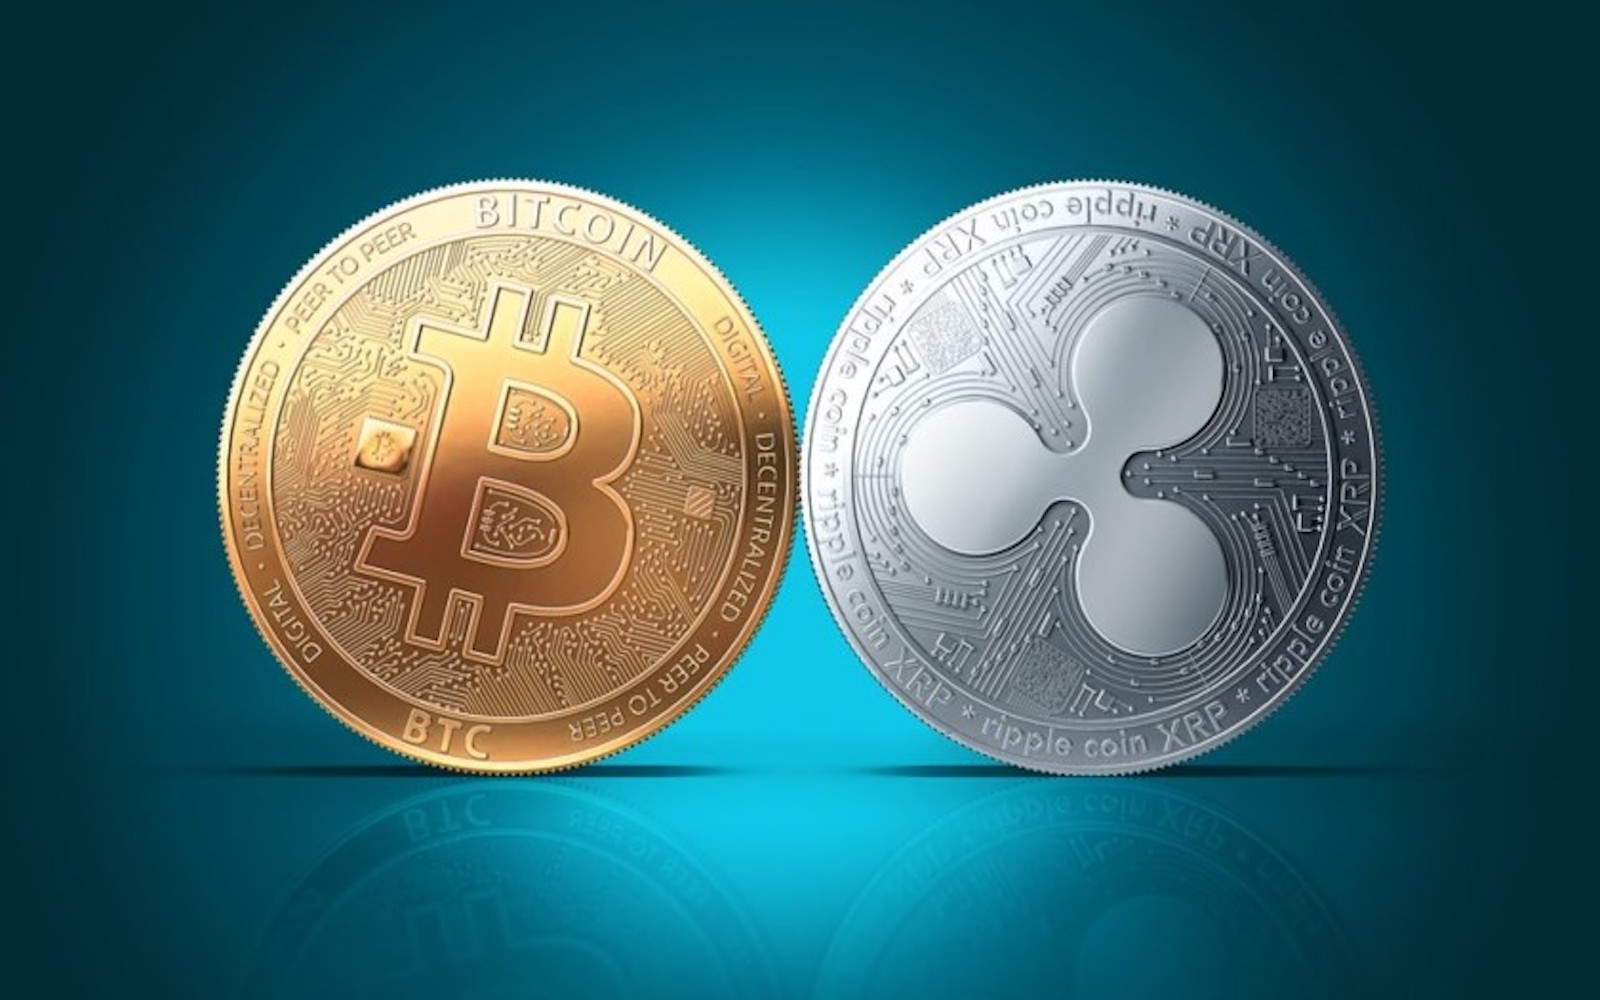 Digital currency ripple soars nearly 56 percent, becomes second-largest cryptocurrency by market cap